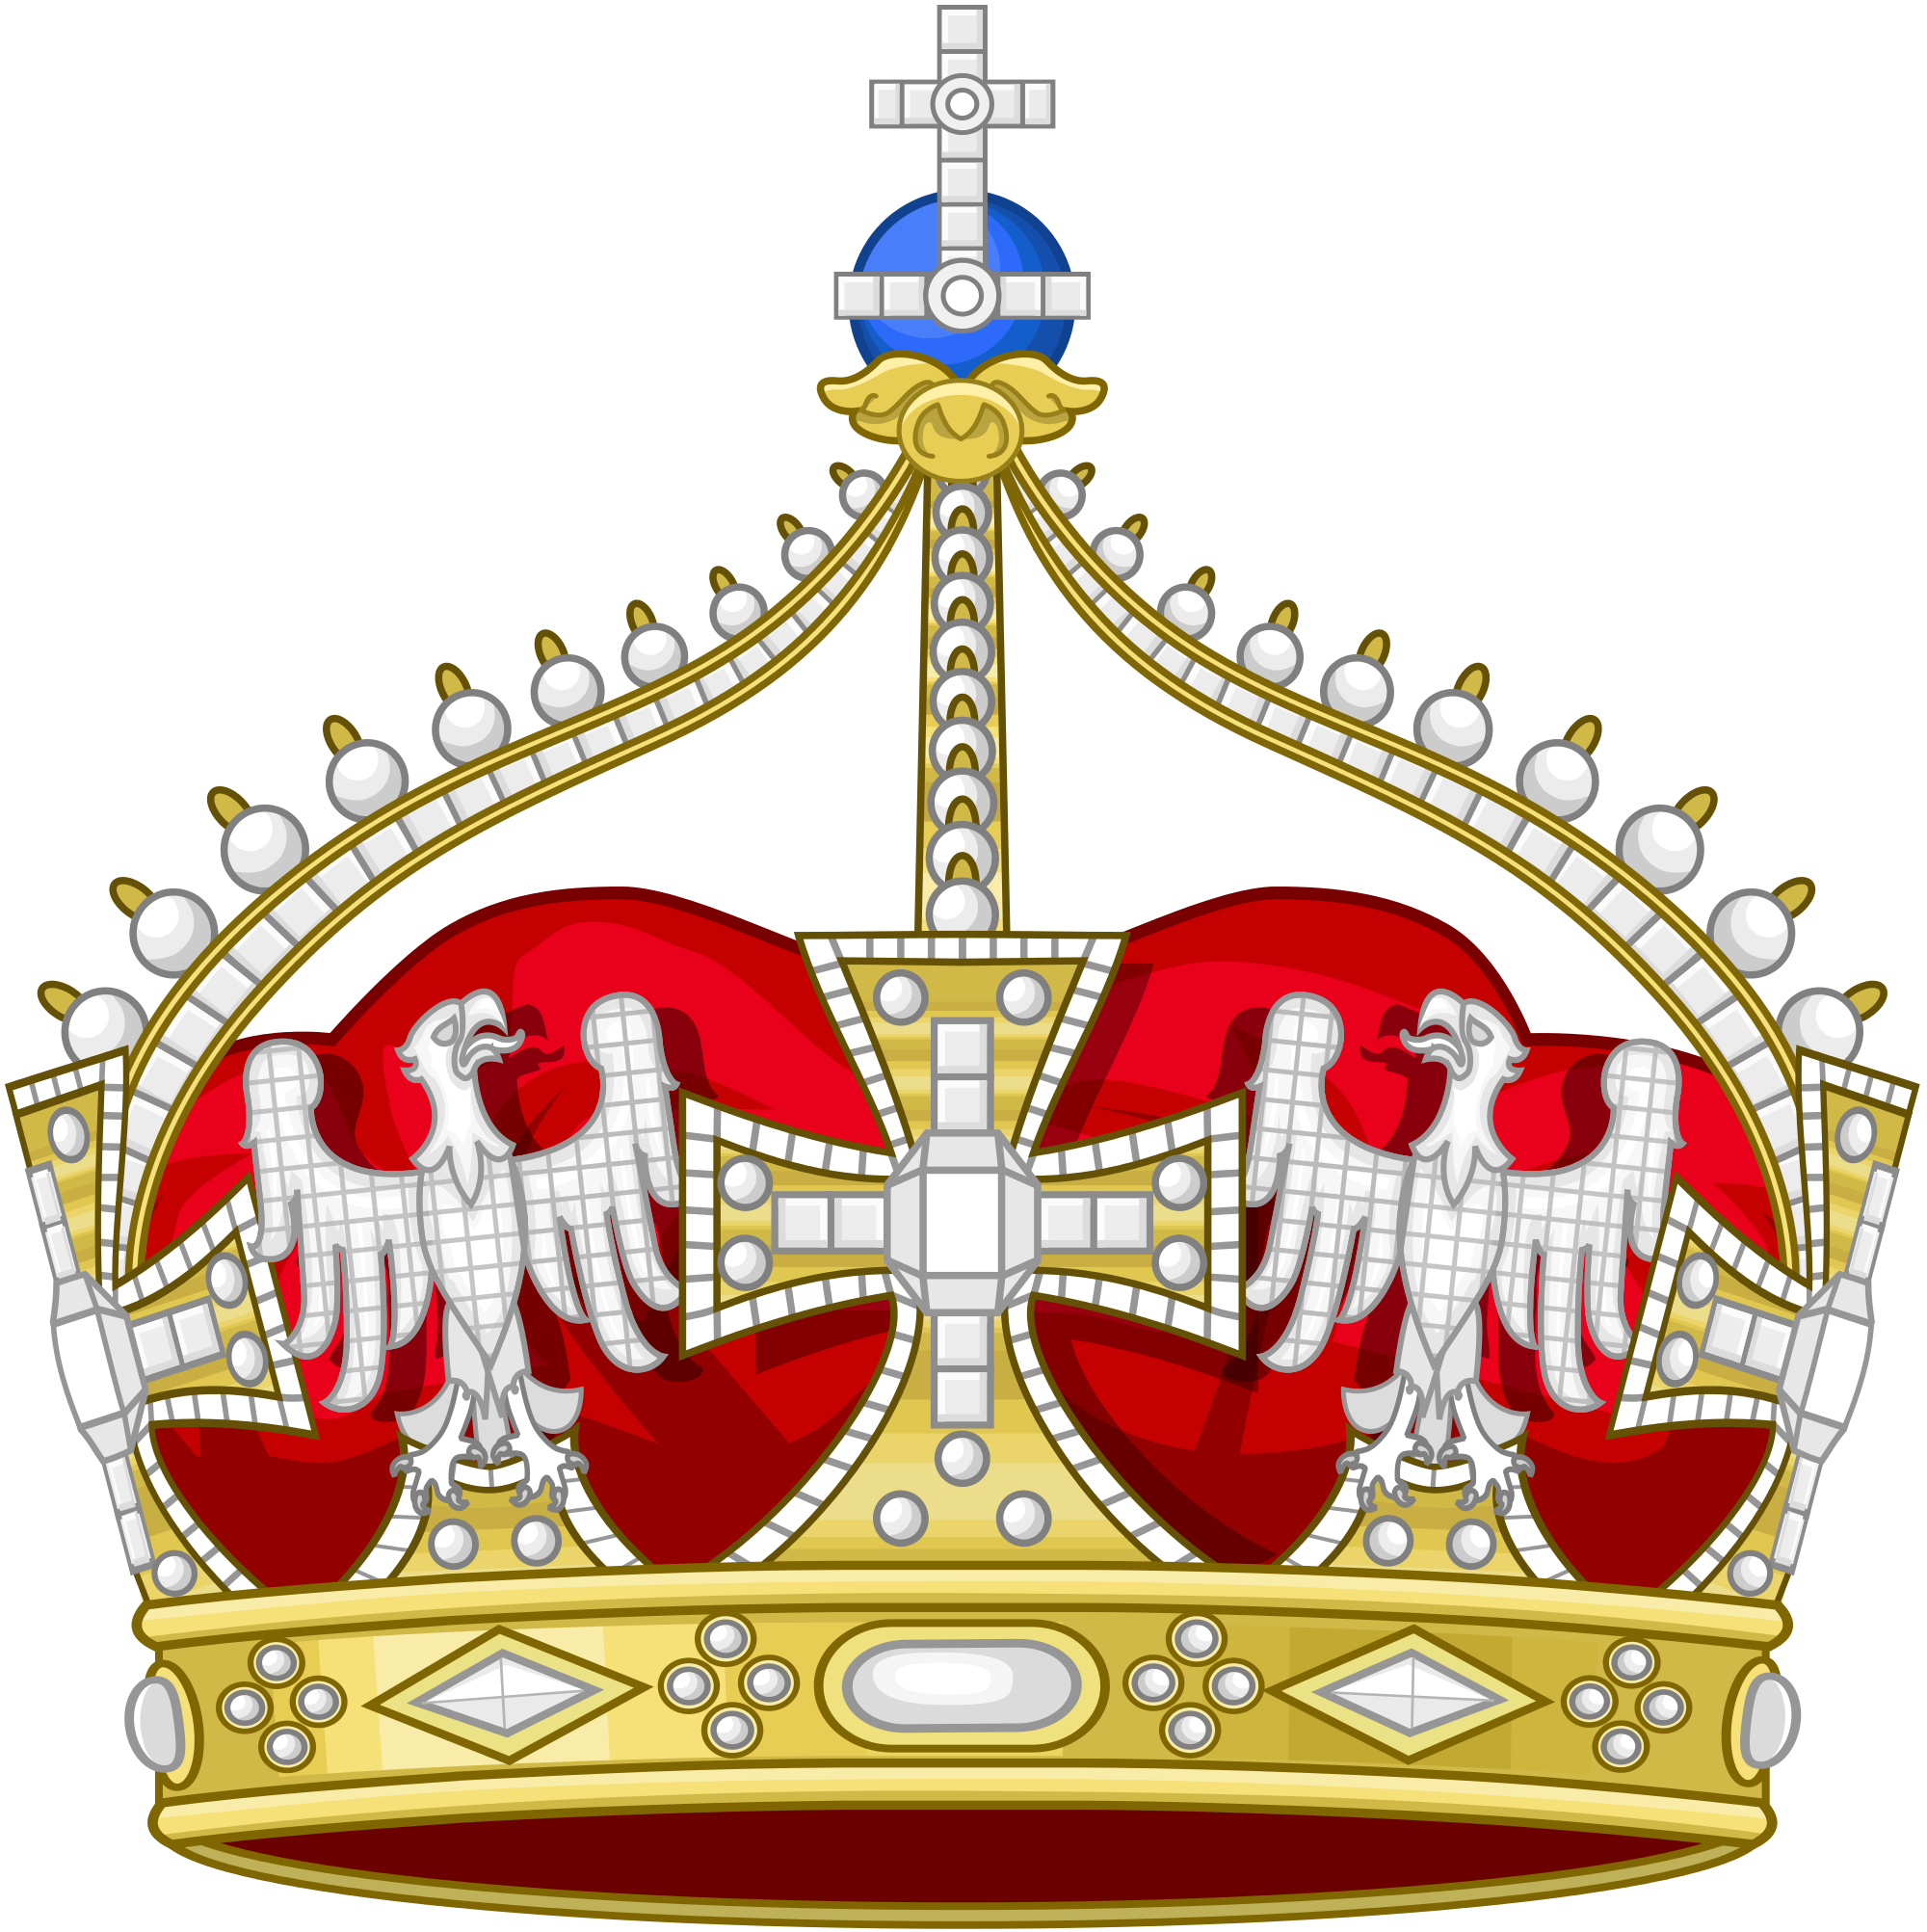 Crown clipart british banner freeuse library Prince Crown Clipart#5344460 - Shop of Clipart Library banner freeuse library